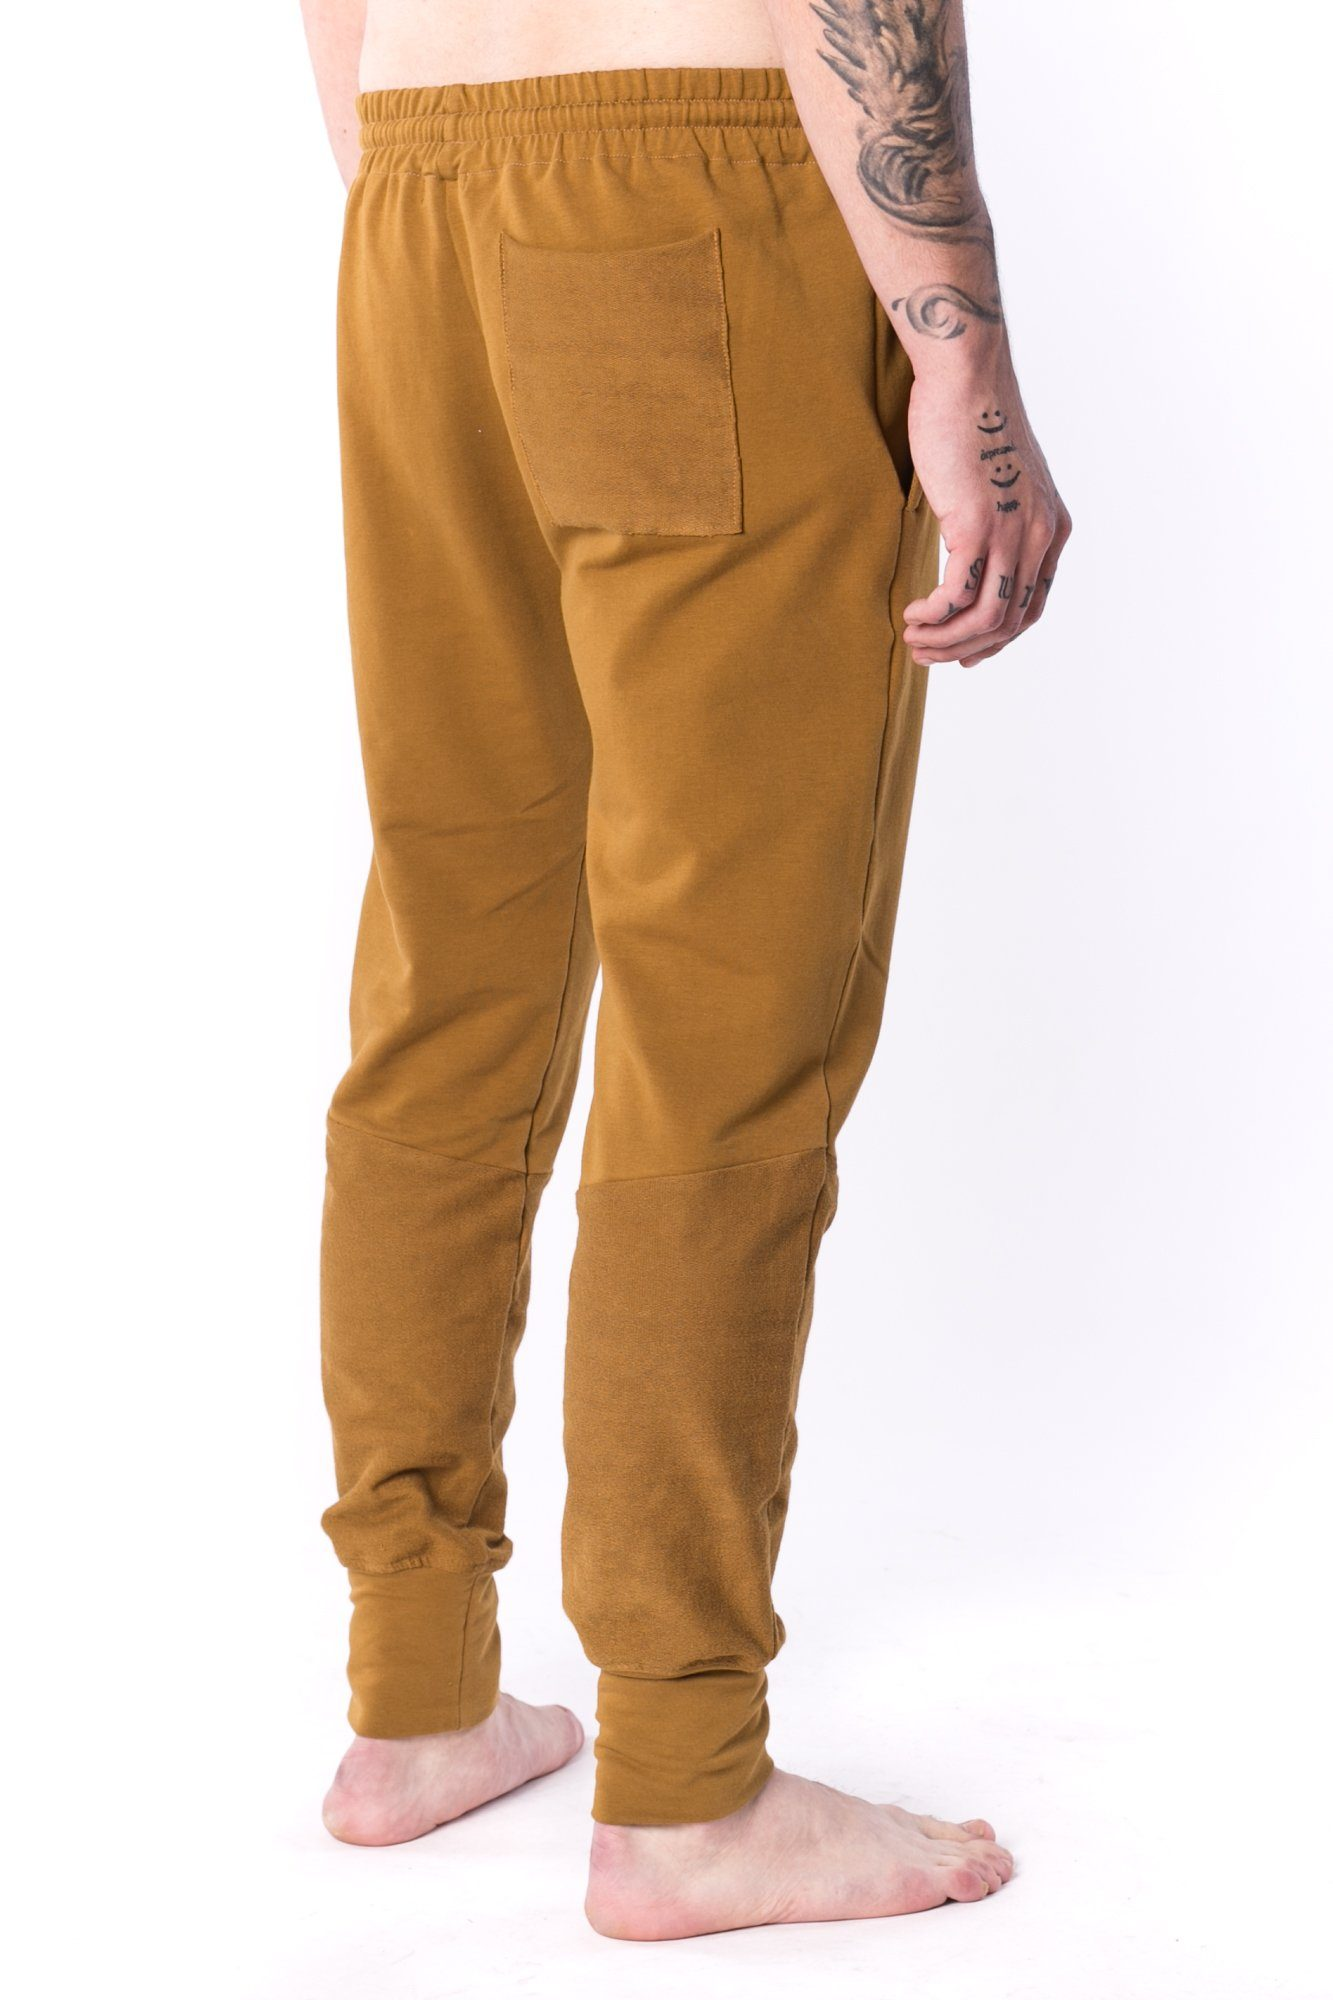 The Man Panelled Jogger 17 // umber